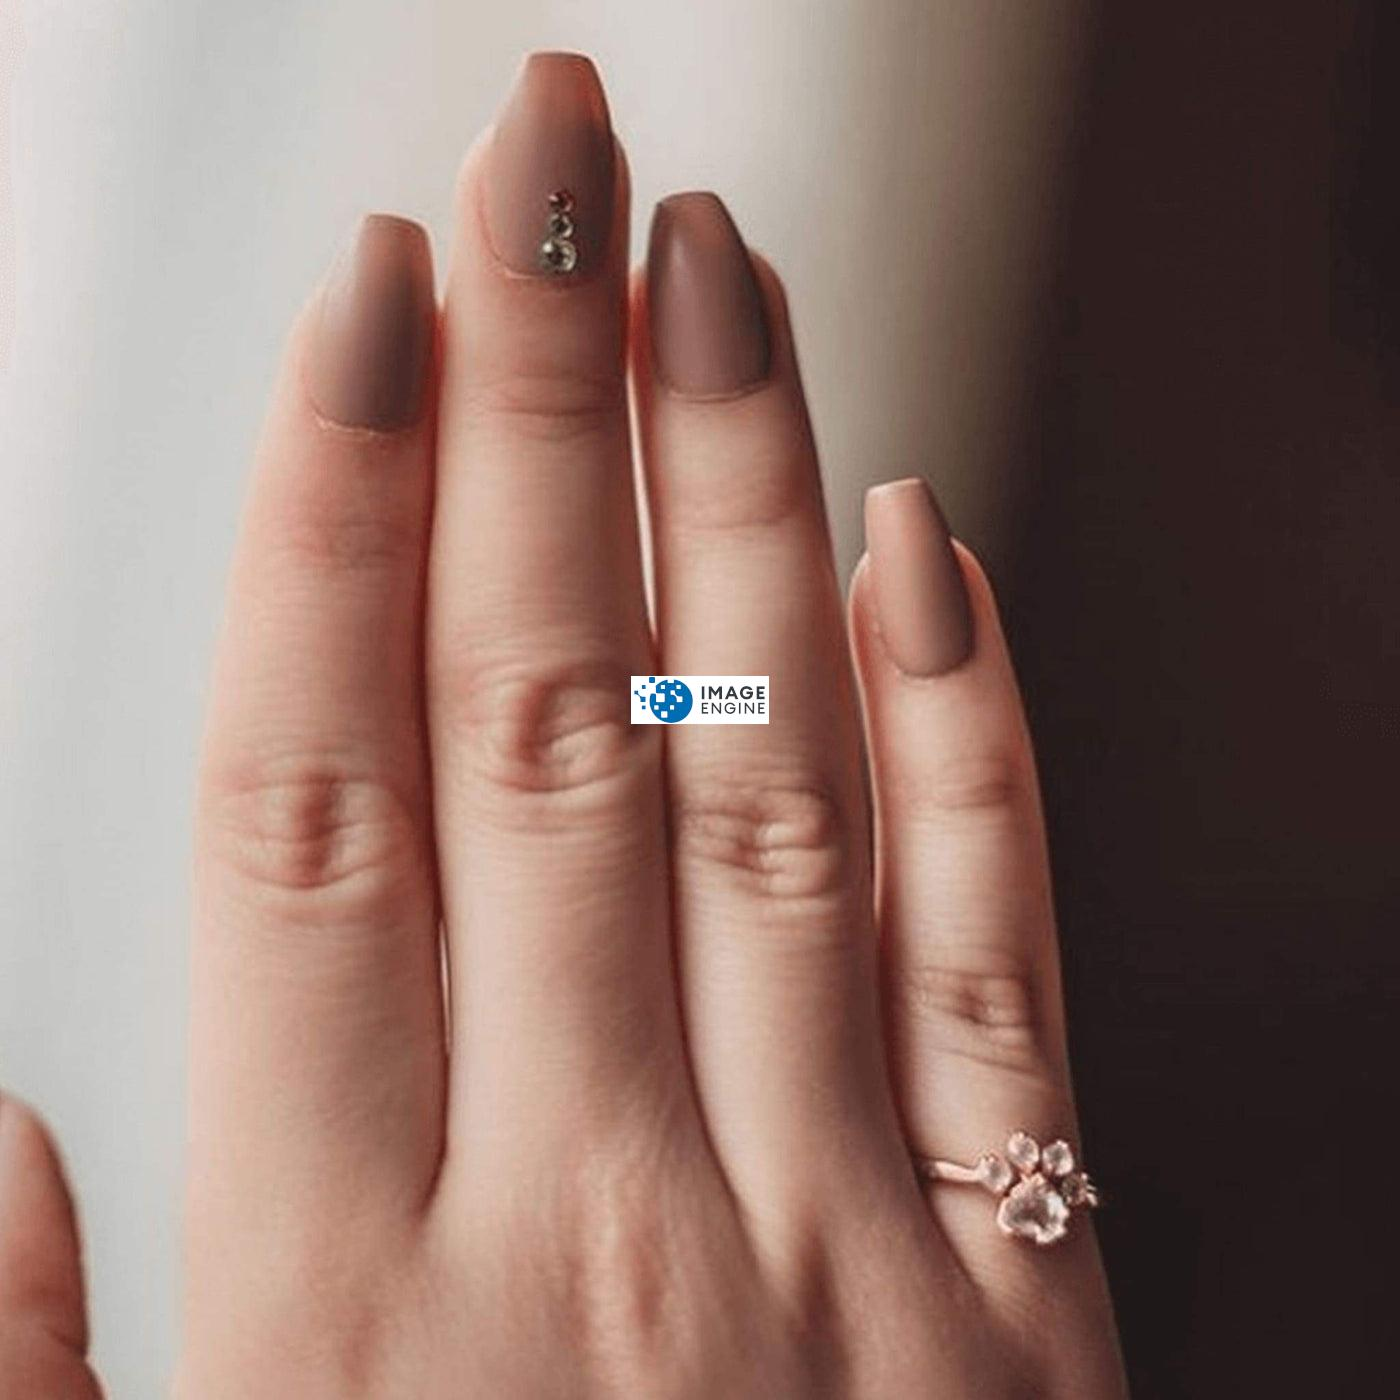 Bella Paw Rose Quartz Ring - On Pinky Finger - 18K Rose Gold Vermeil